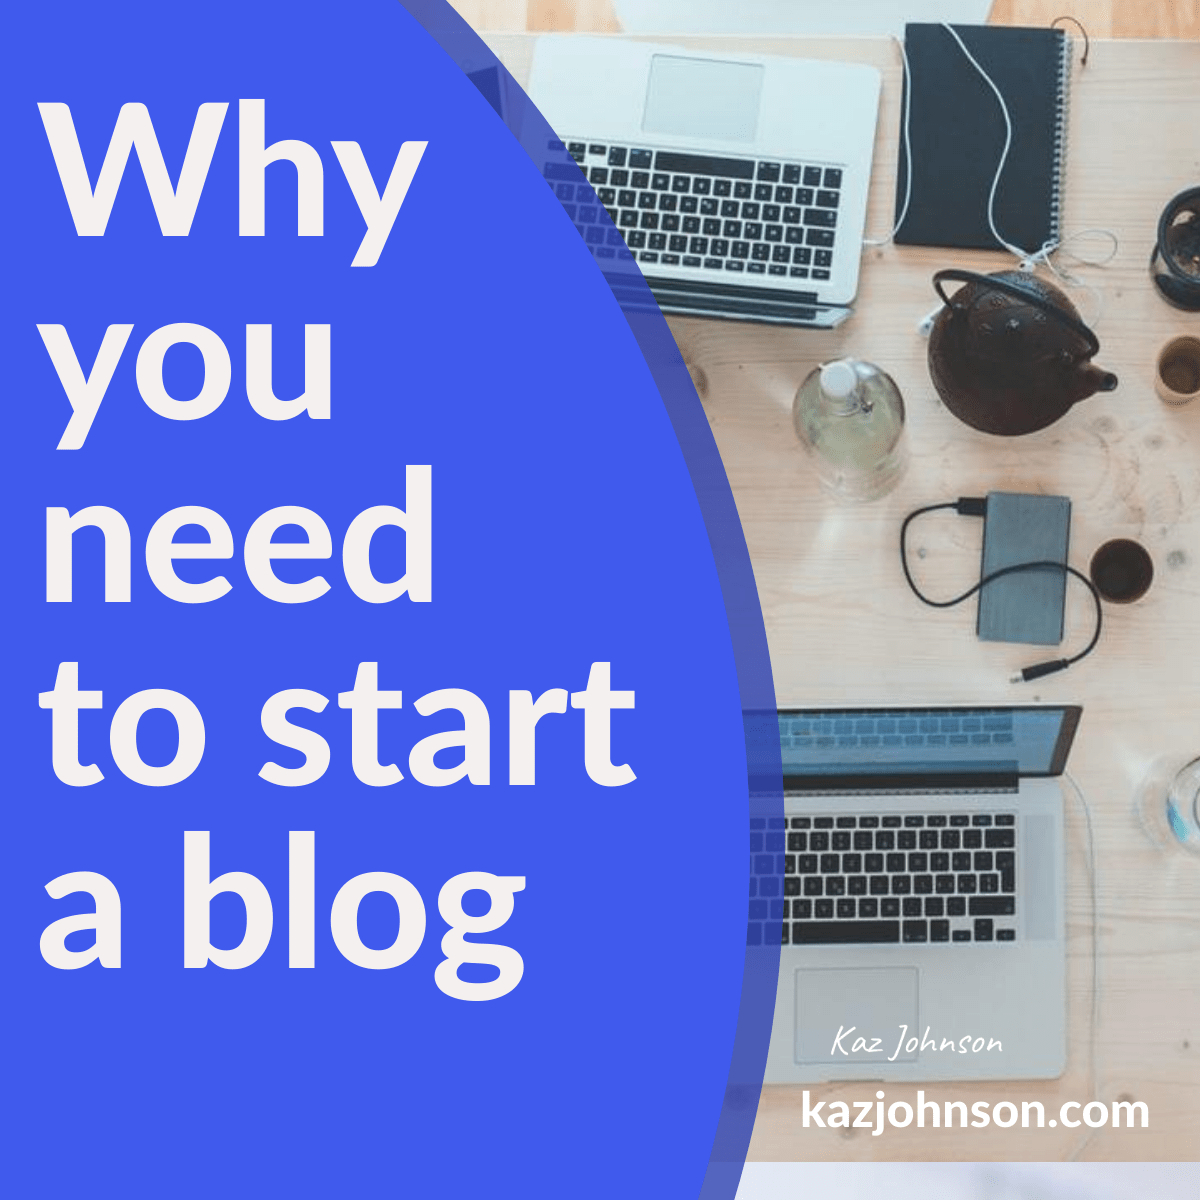 Why you need to start a blog